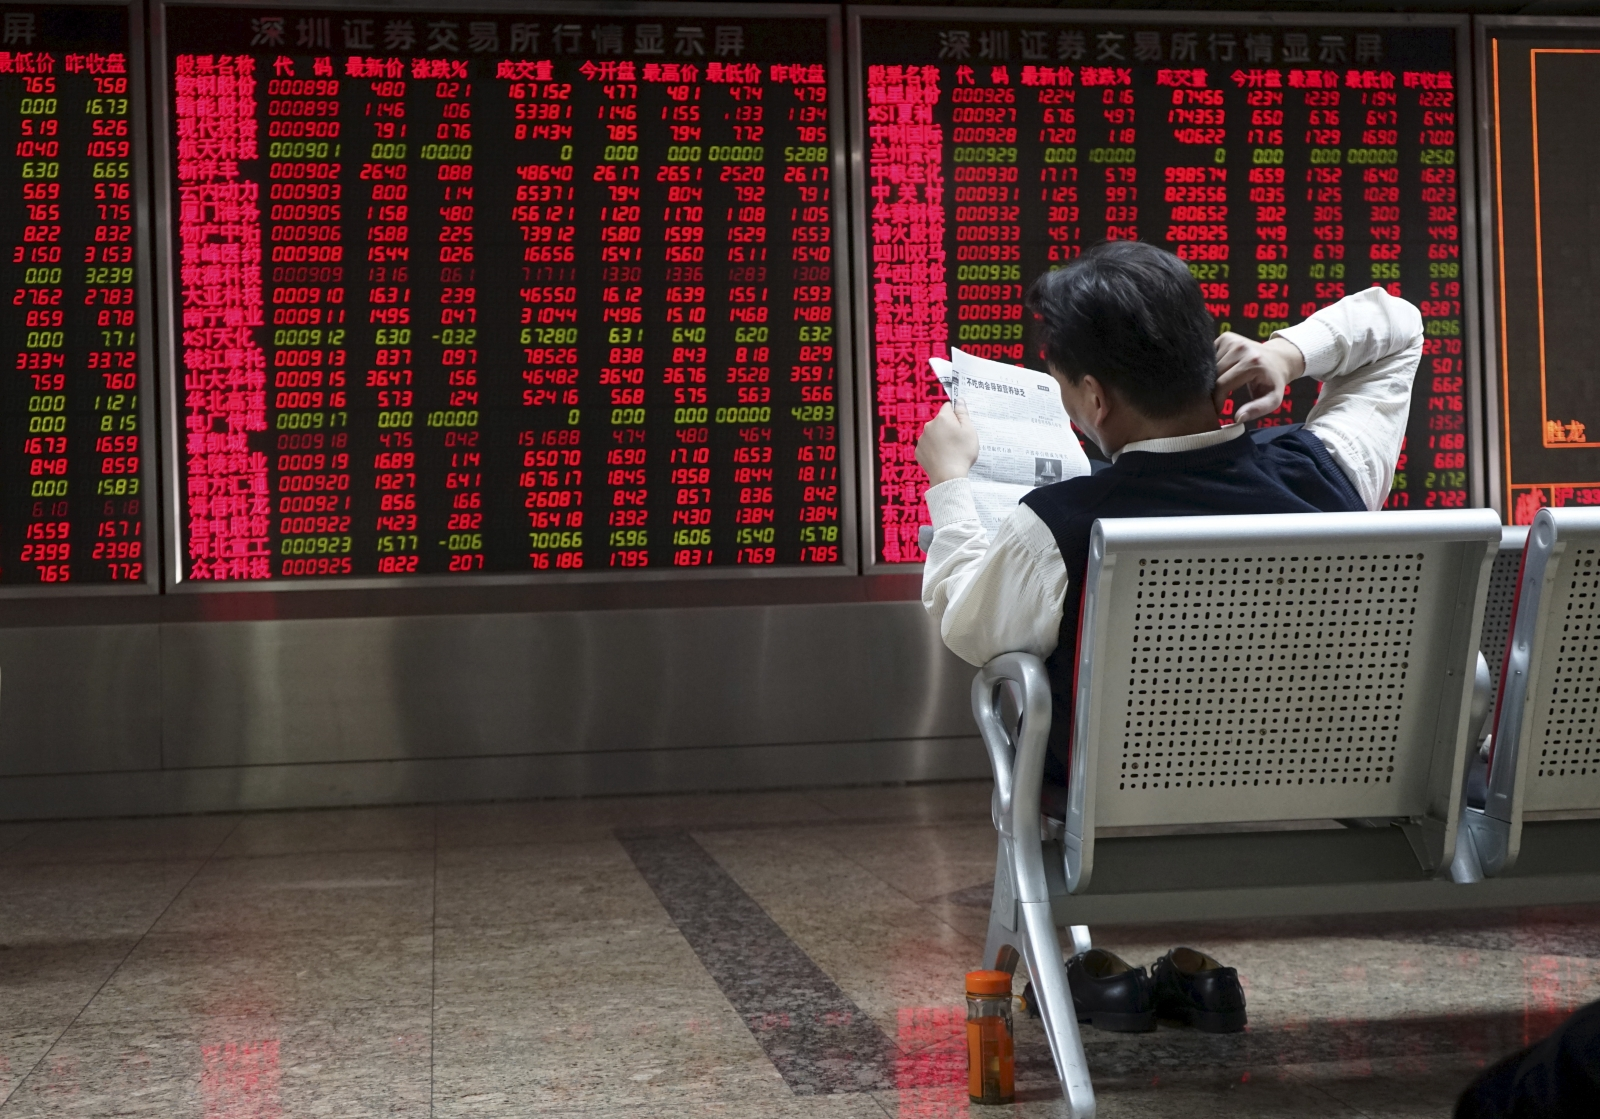 Asian markets: Shanghai Composite gains as BOE hints at interest rate cuts